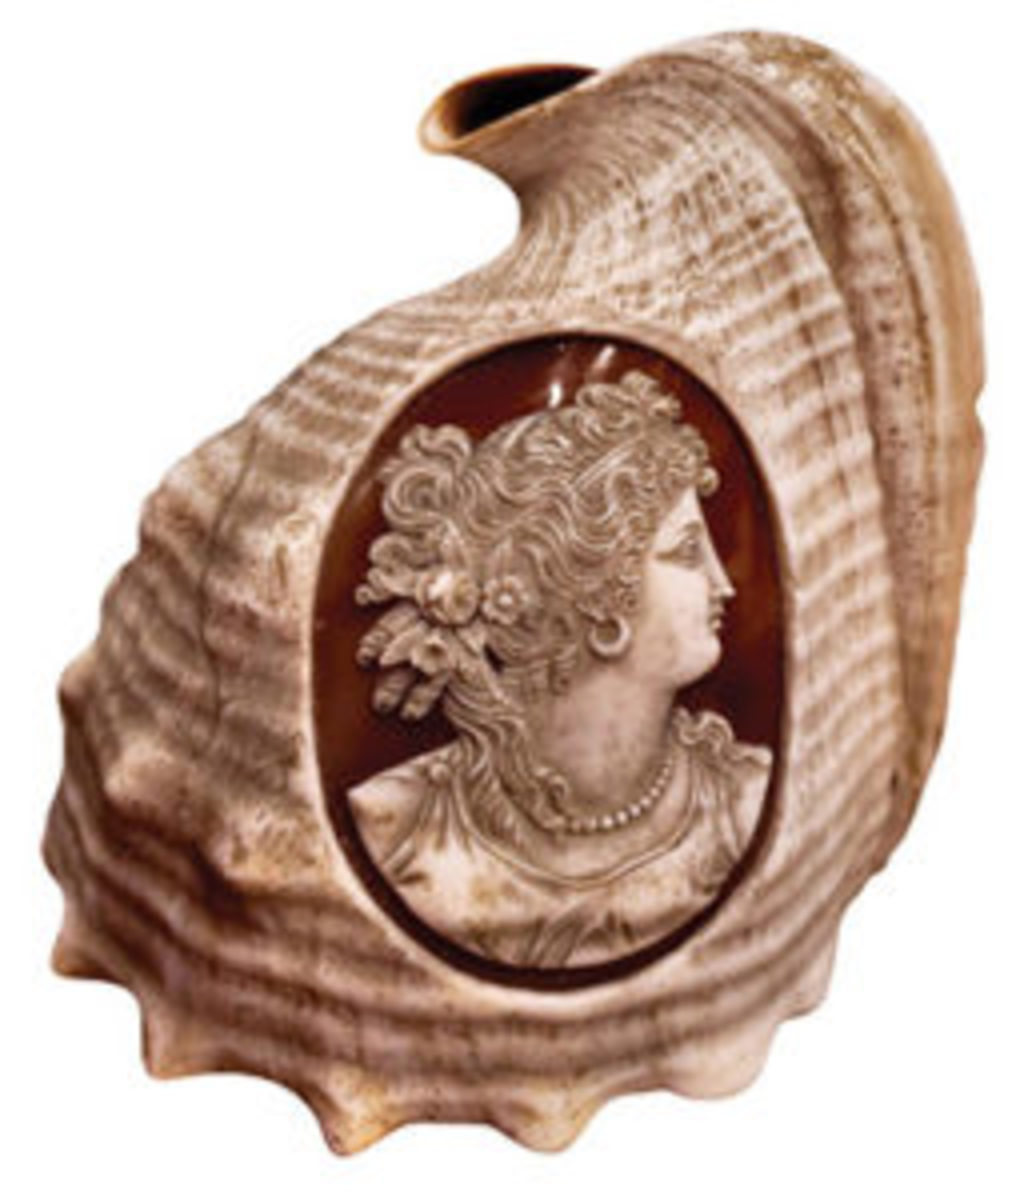 The shells most prized for carving cameos are those with naturally occurring layers of contrasting color. Shown here is a cameo carved into a kameynye shell, from the collection of author and historian Carol Greene. Courtesy of Dr. Anthony Cavo